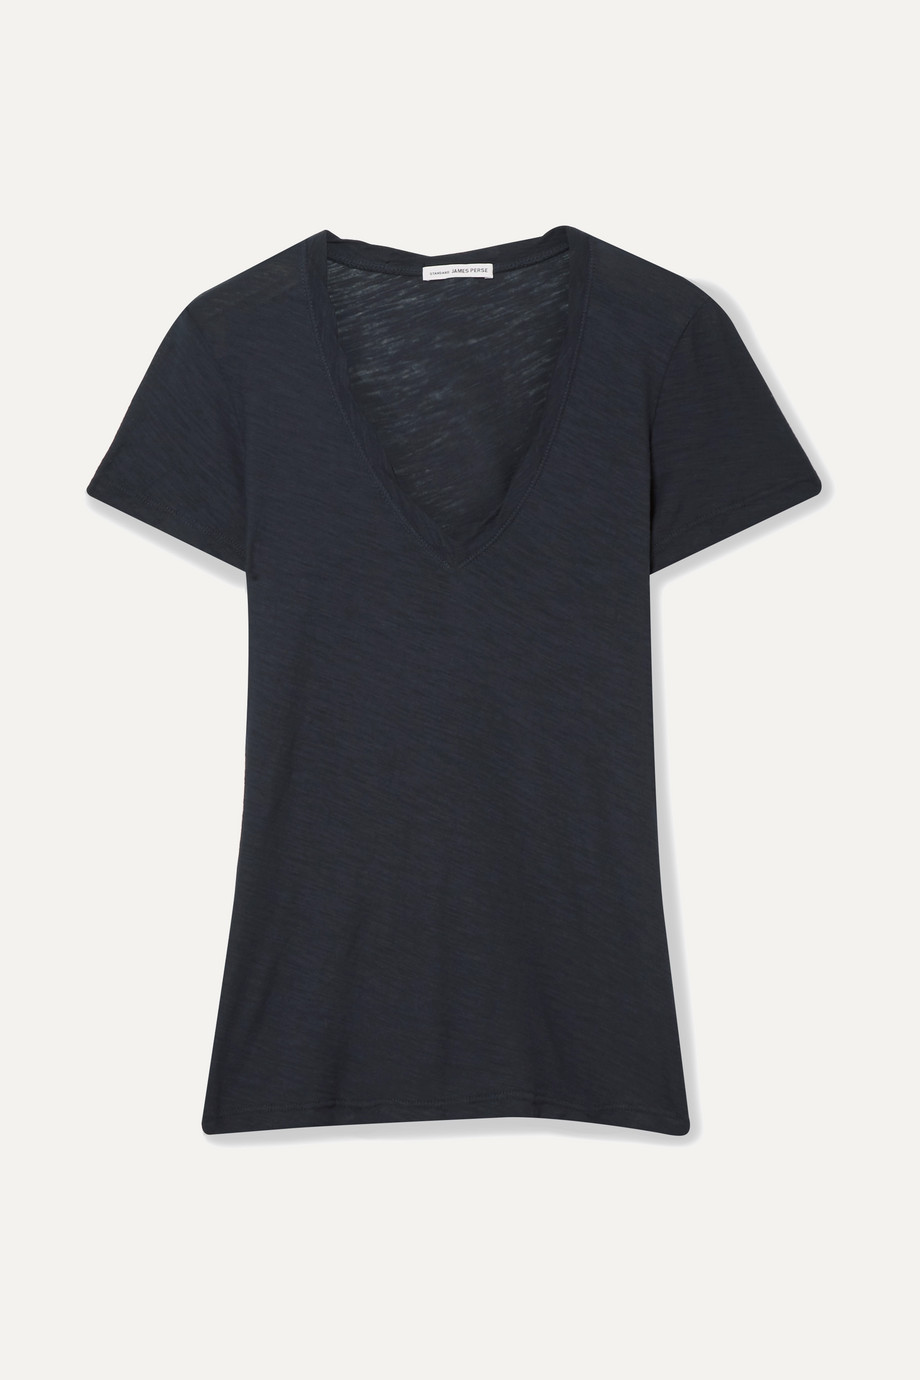 James Perse Slub Supima cotton-jersey T-shirt